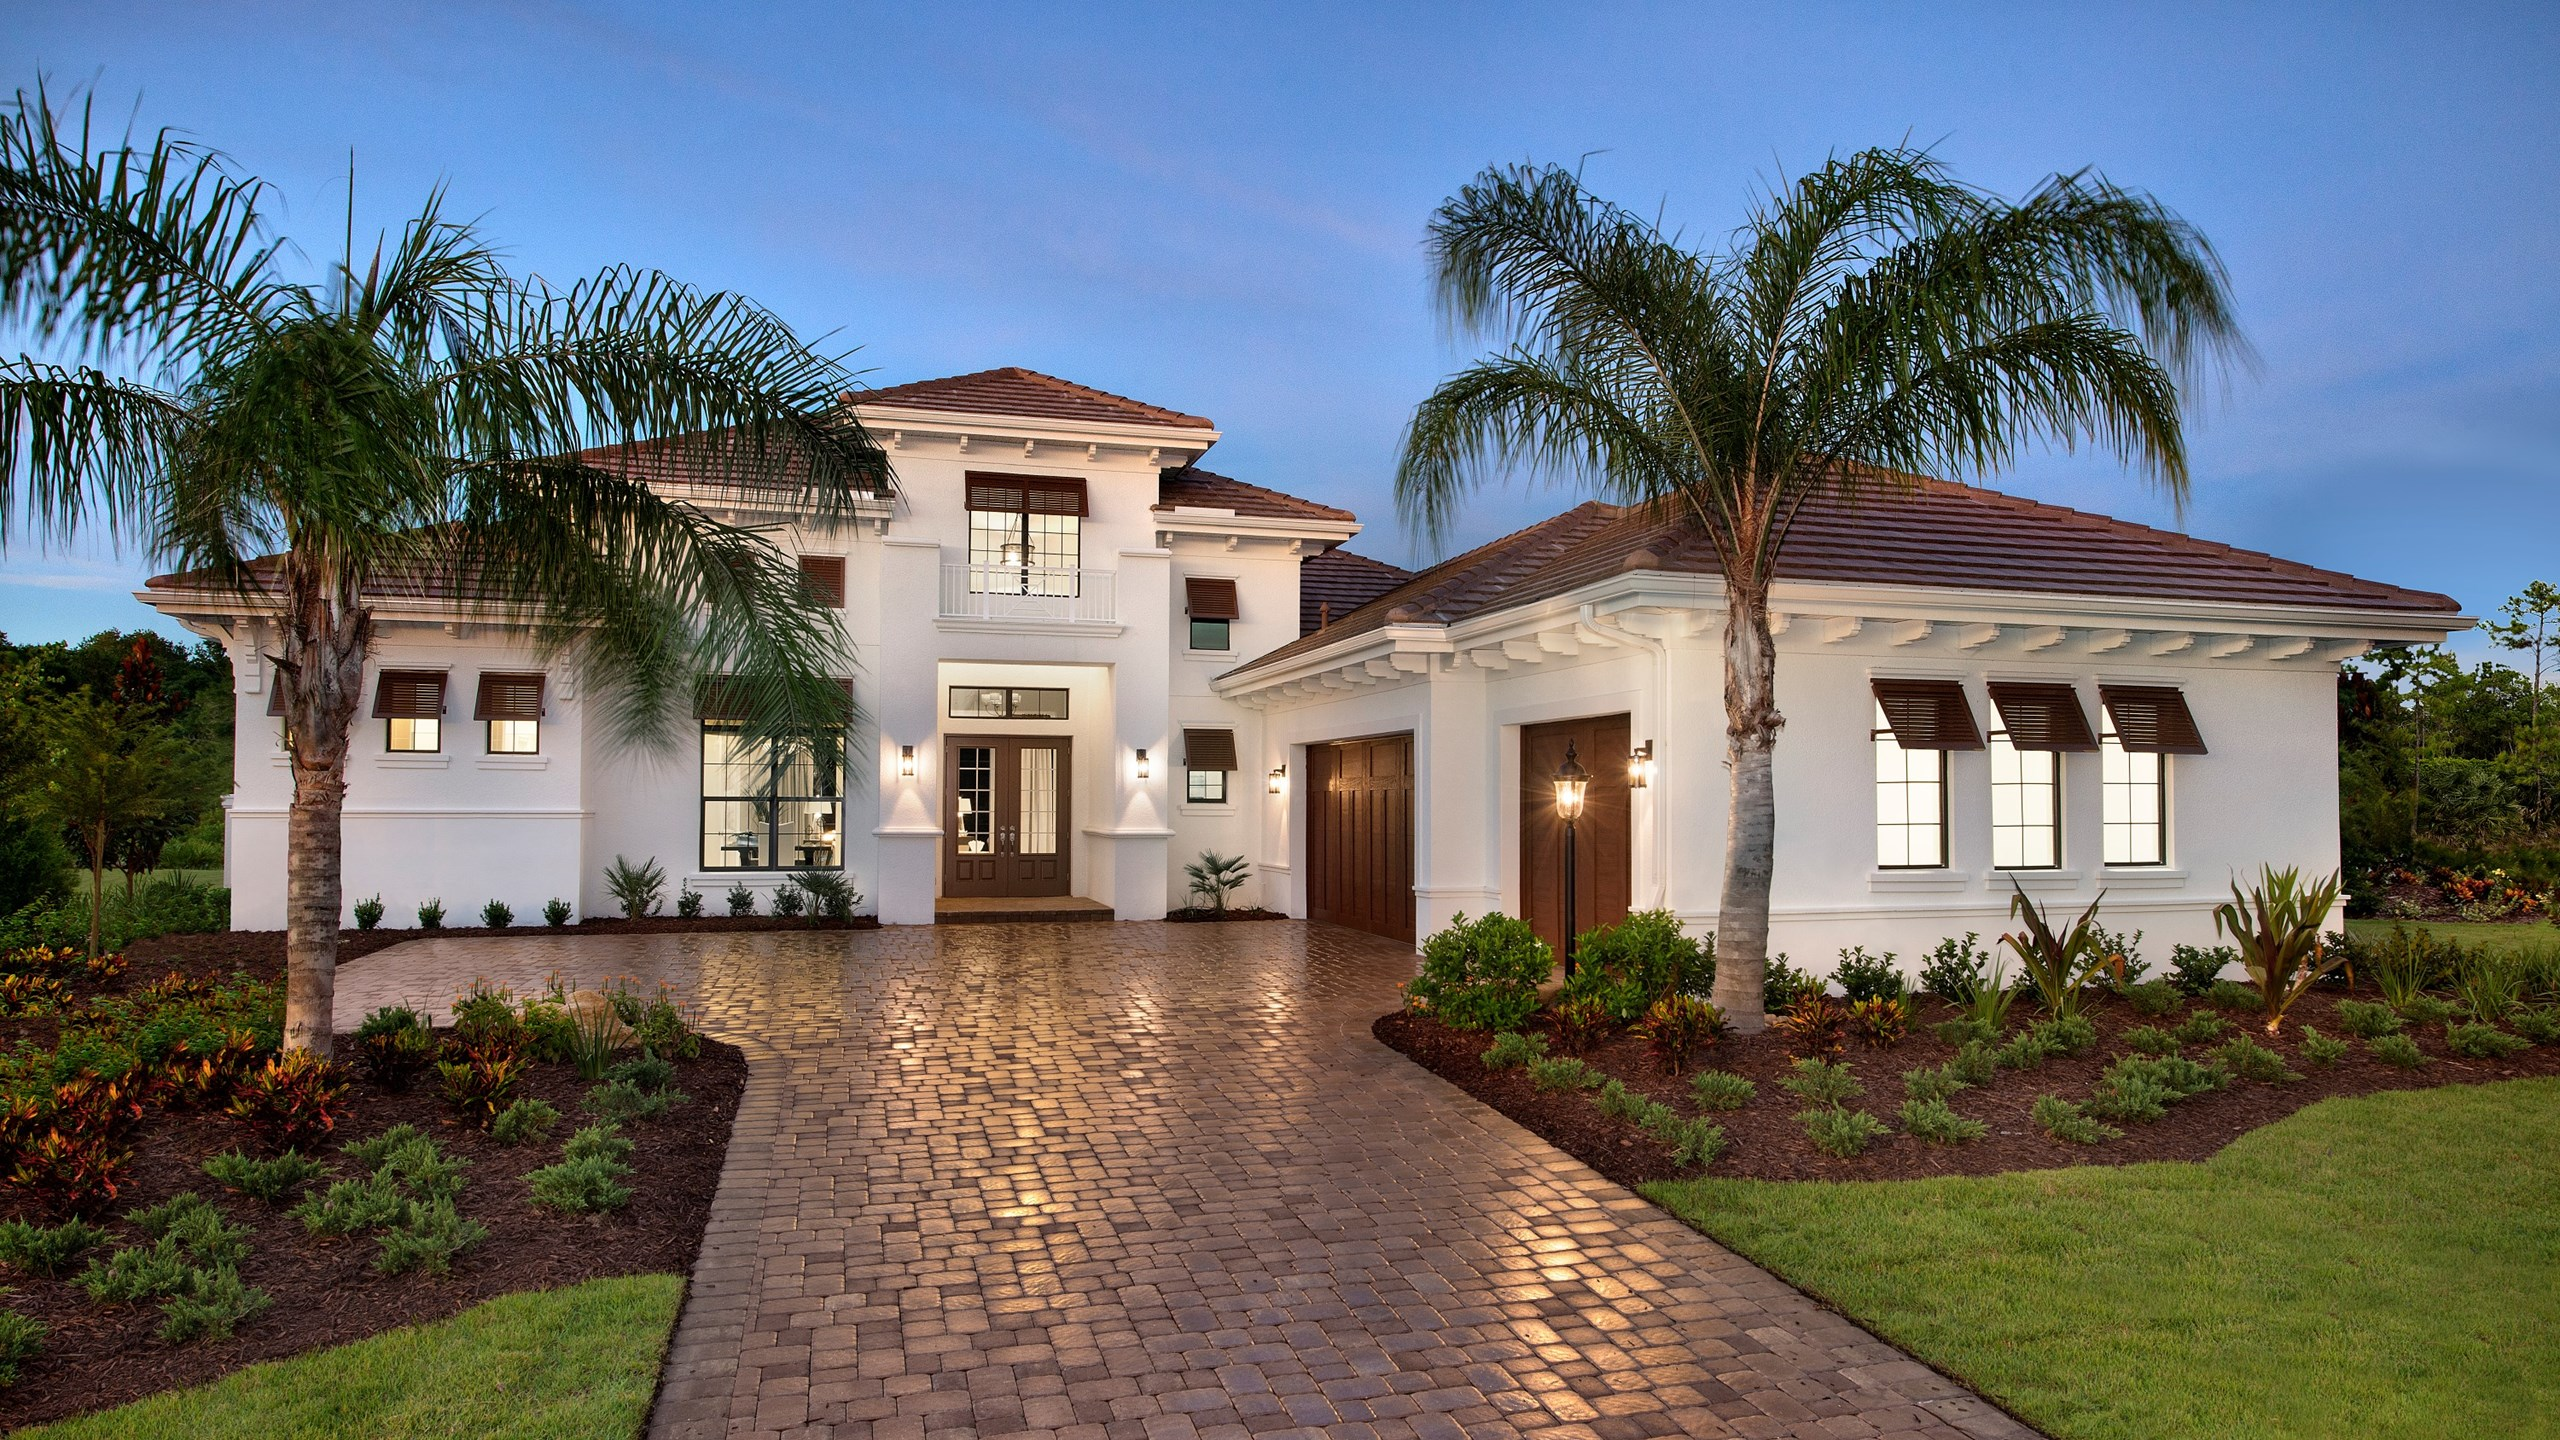 Lakewood Ranch Florida Real Estate | Lakewood Ranch Realtor | New Homes Communities